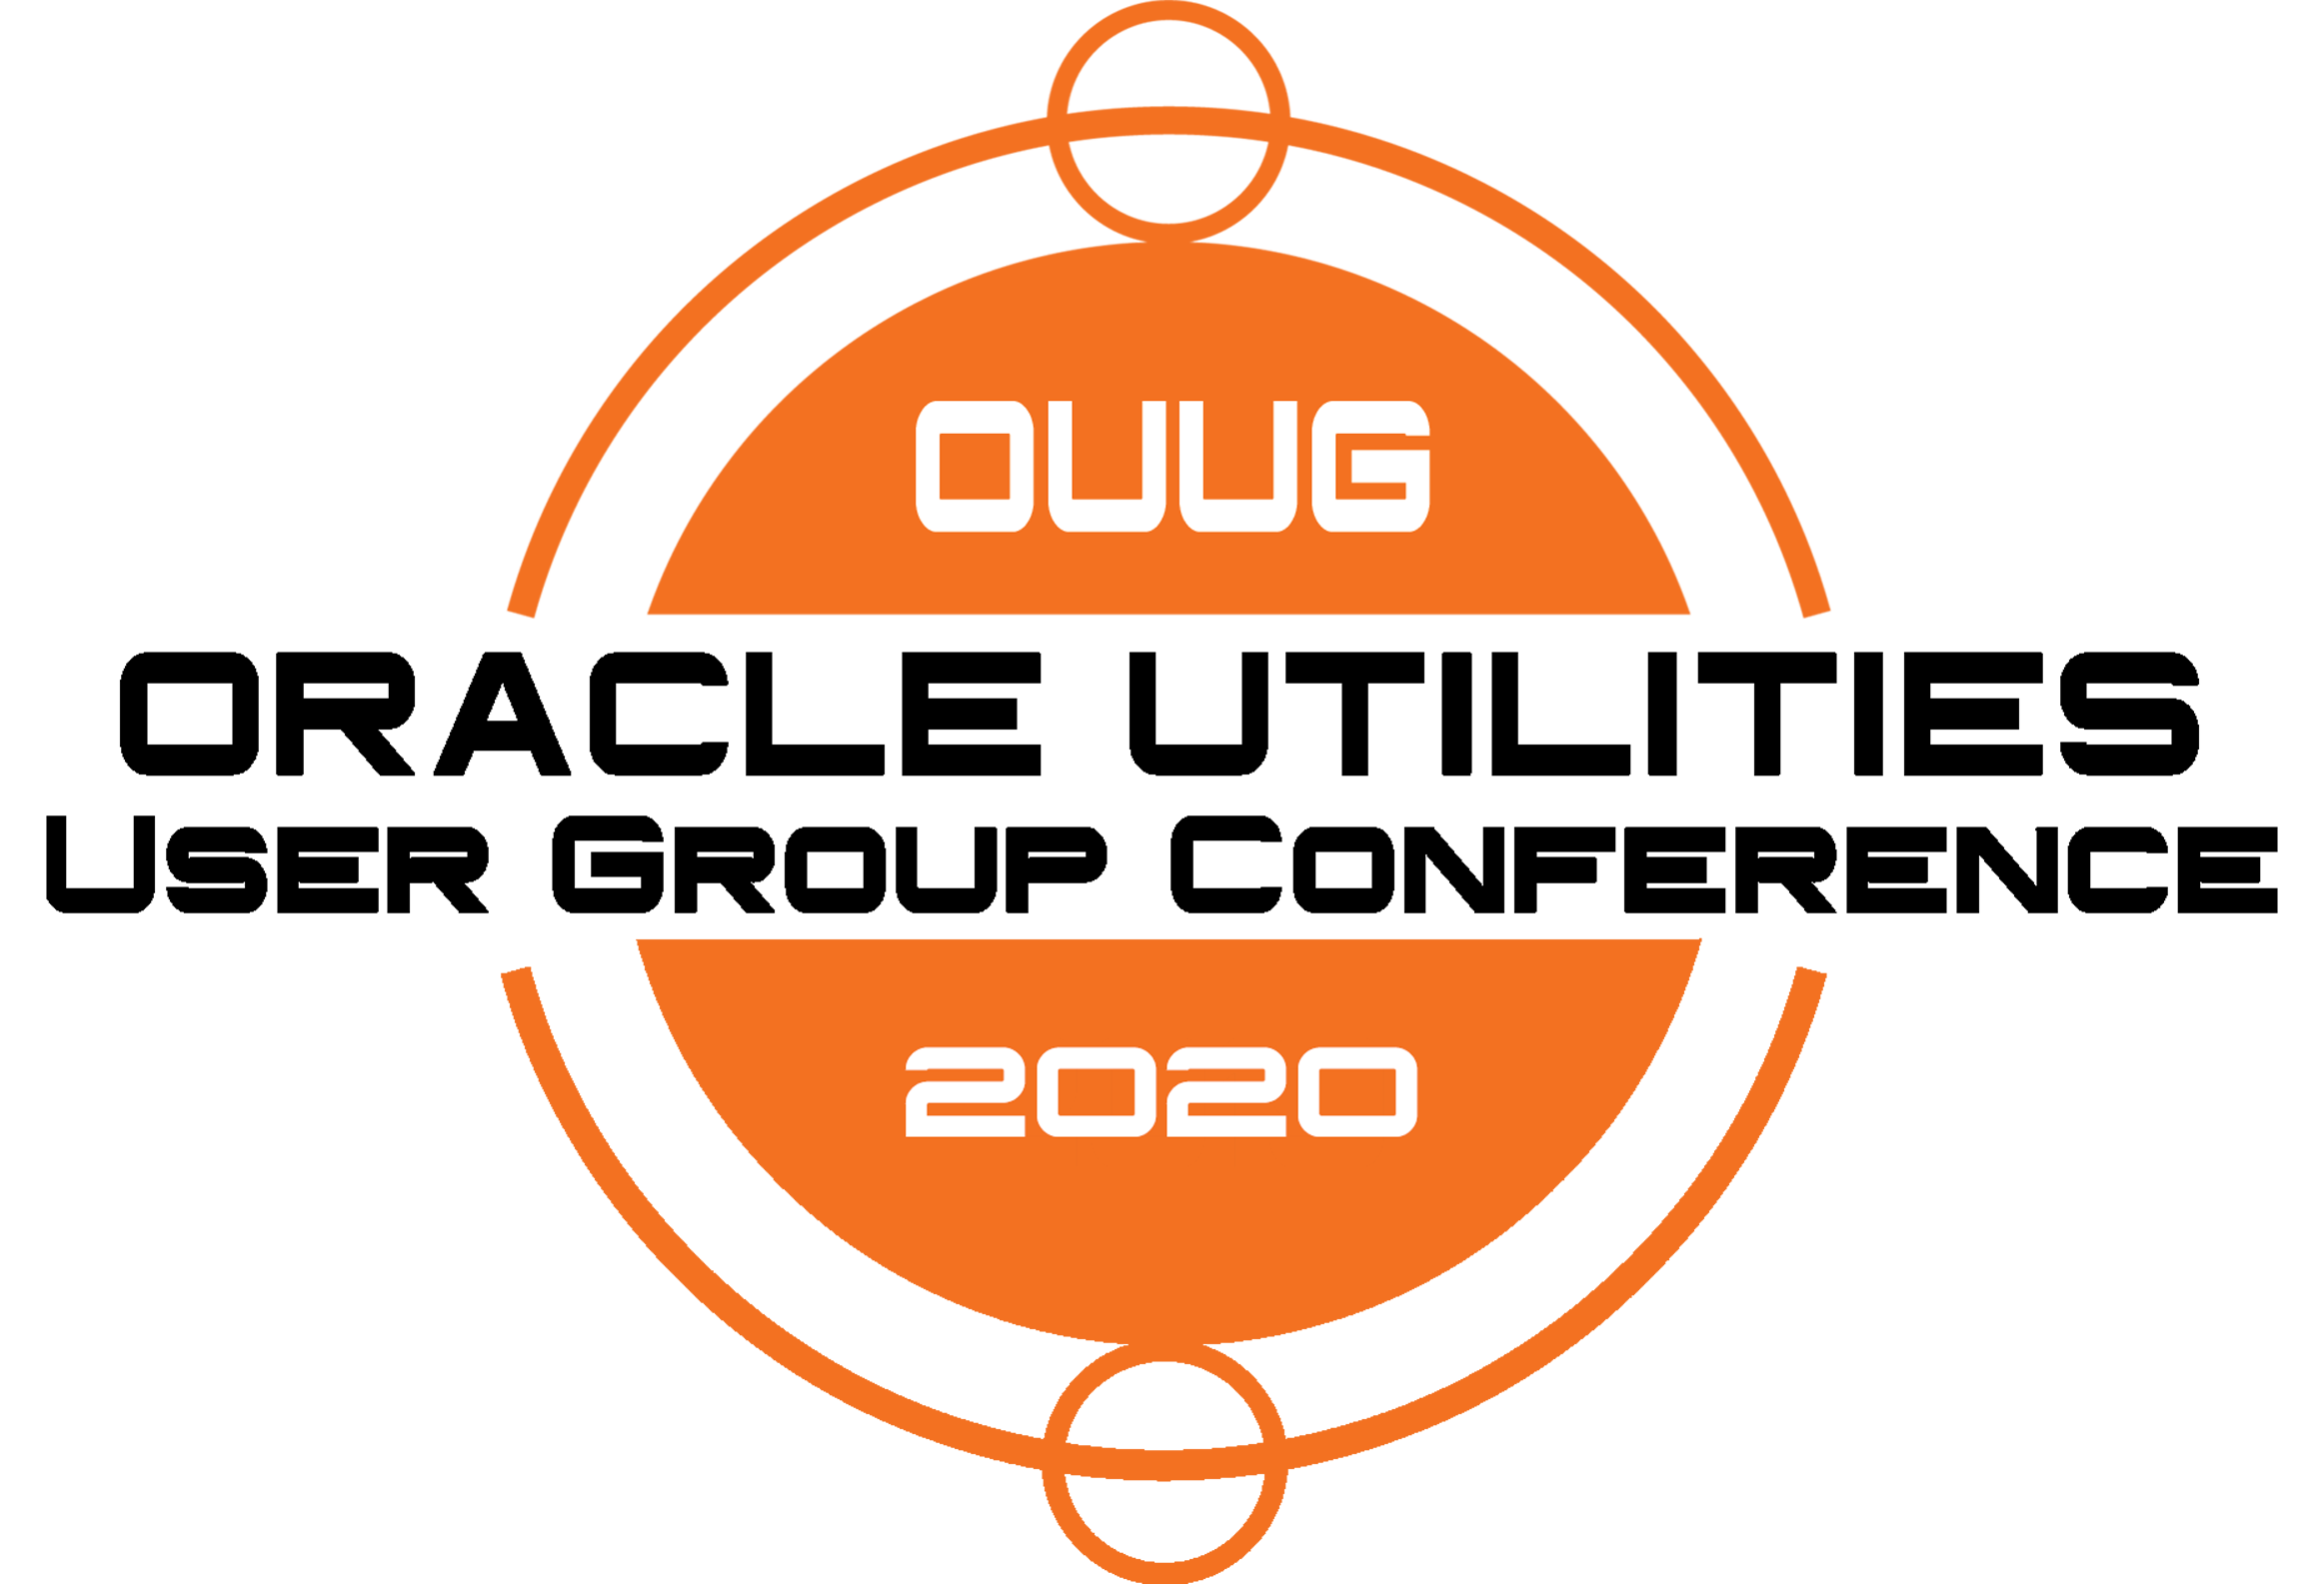 OUUG 2020 | Oracle Utilities Users Group Conference OUUG